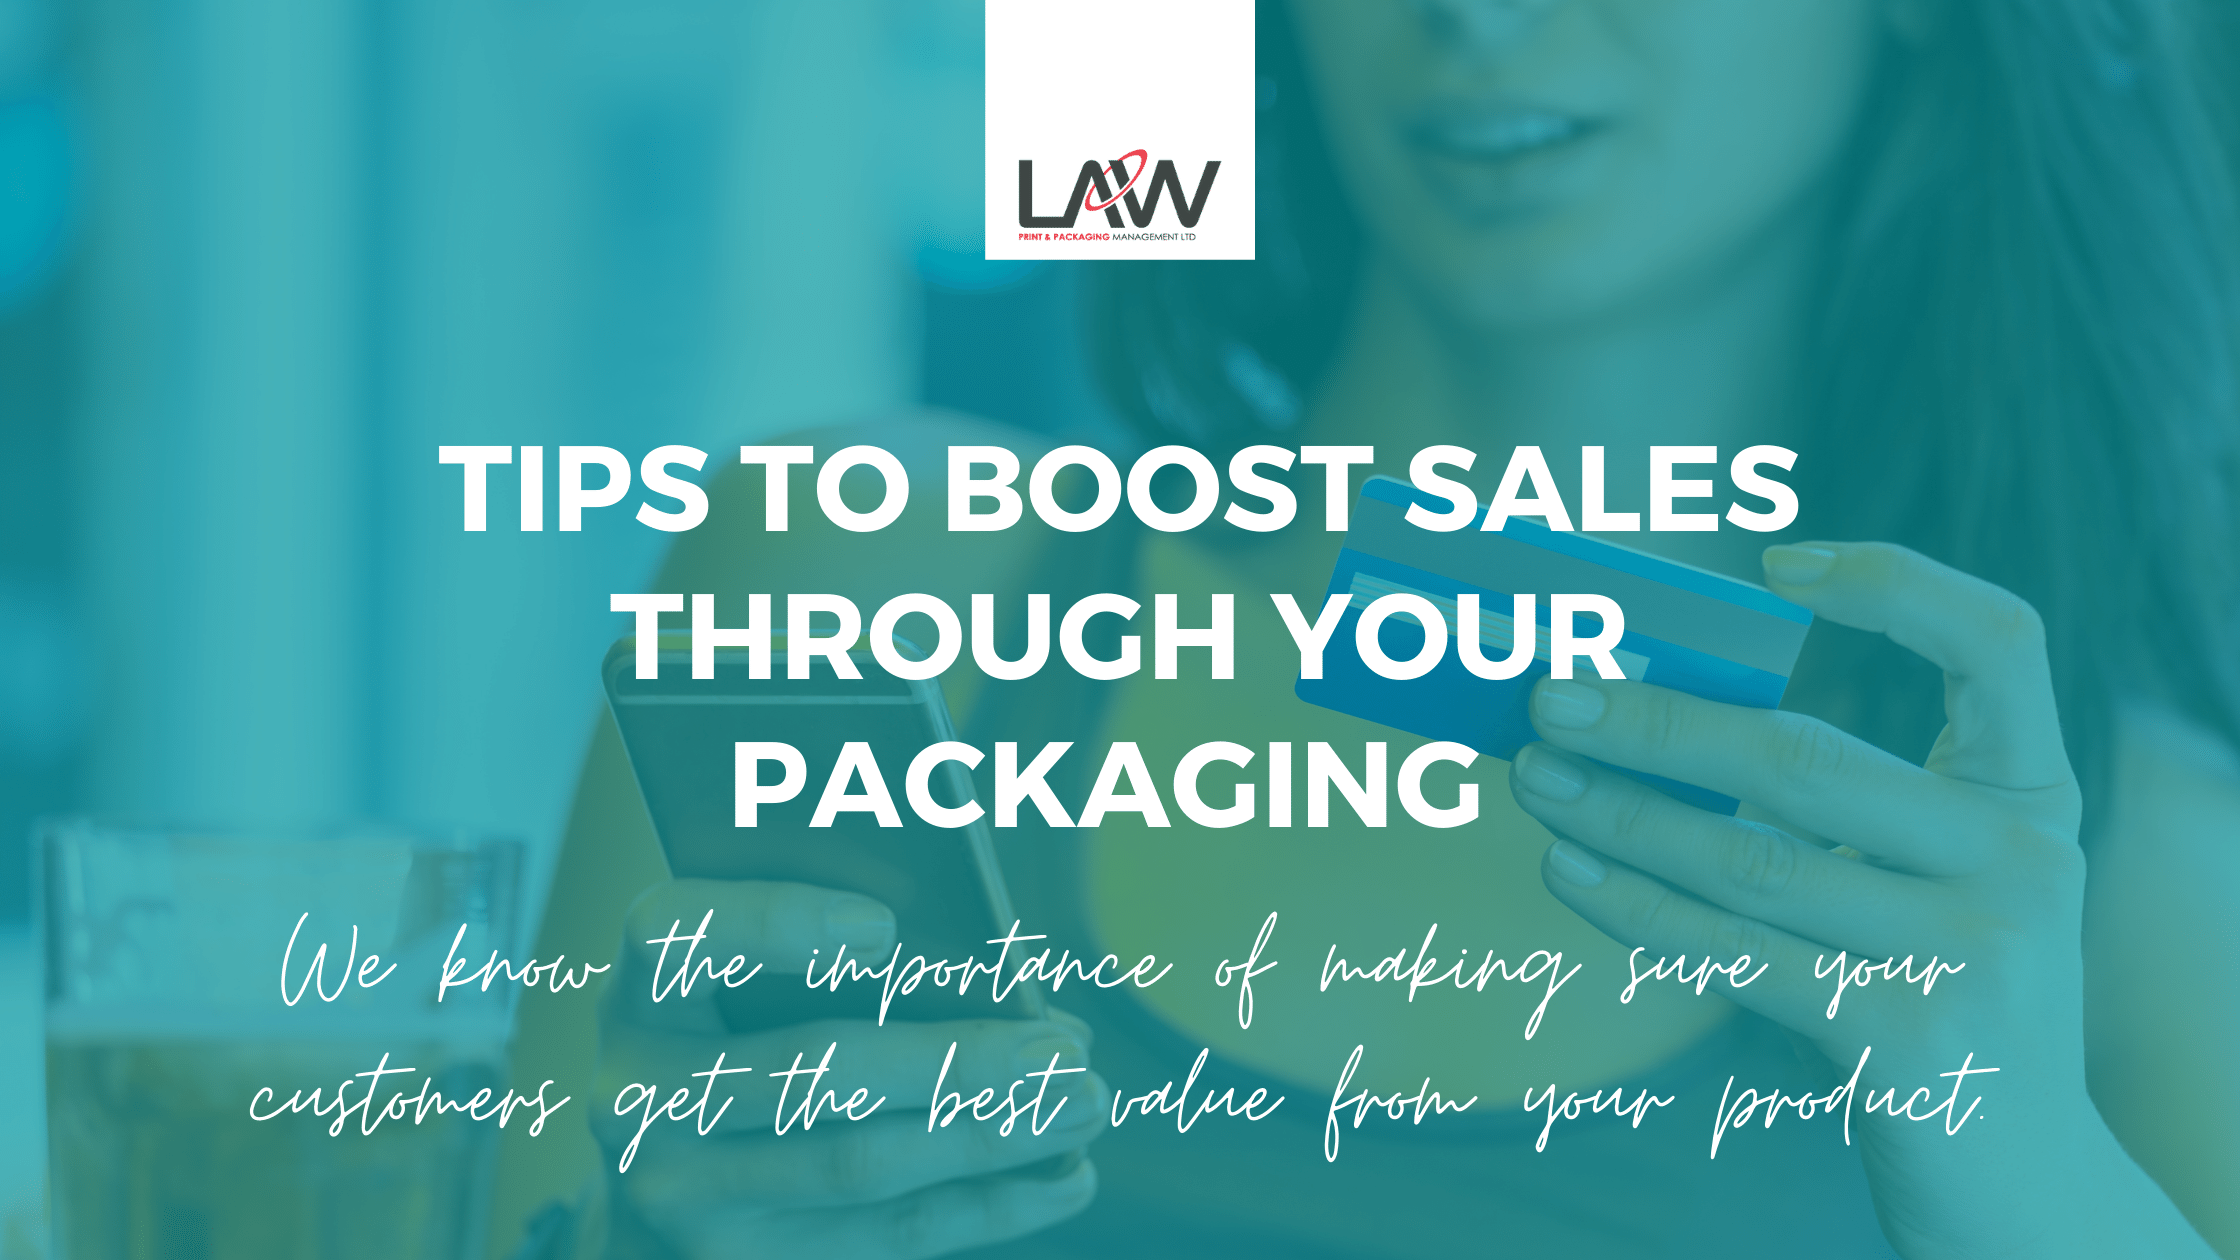 Tips to Boost Sales Through Your Packaging